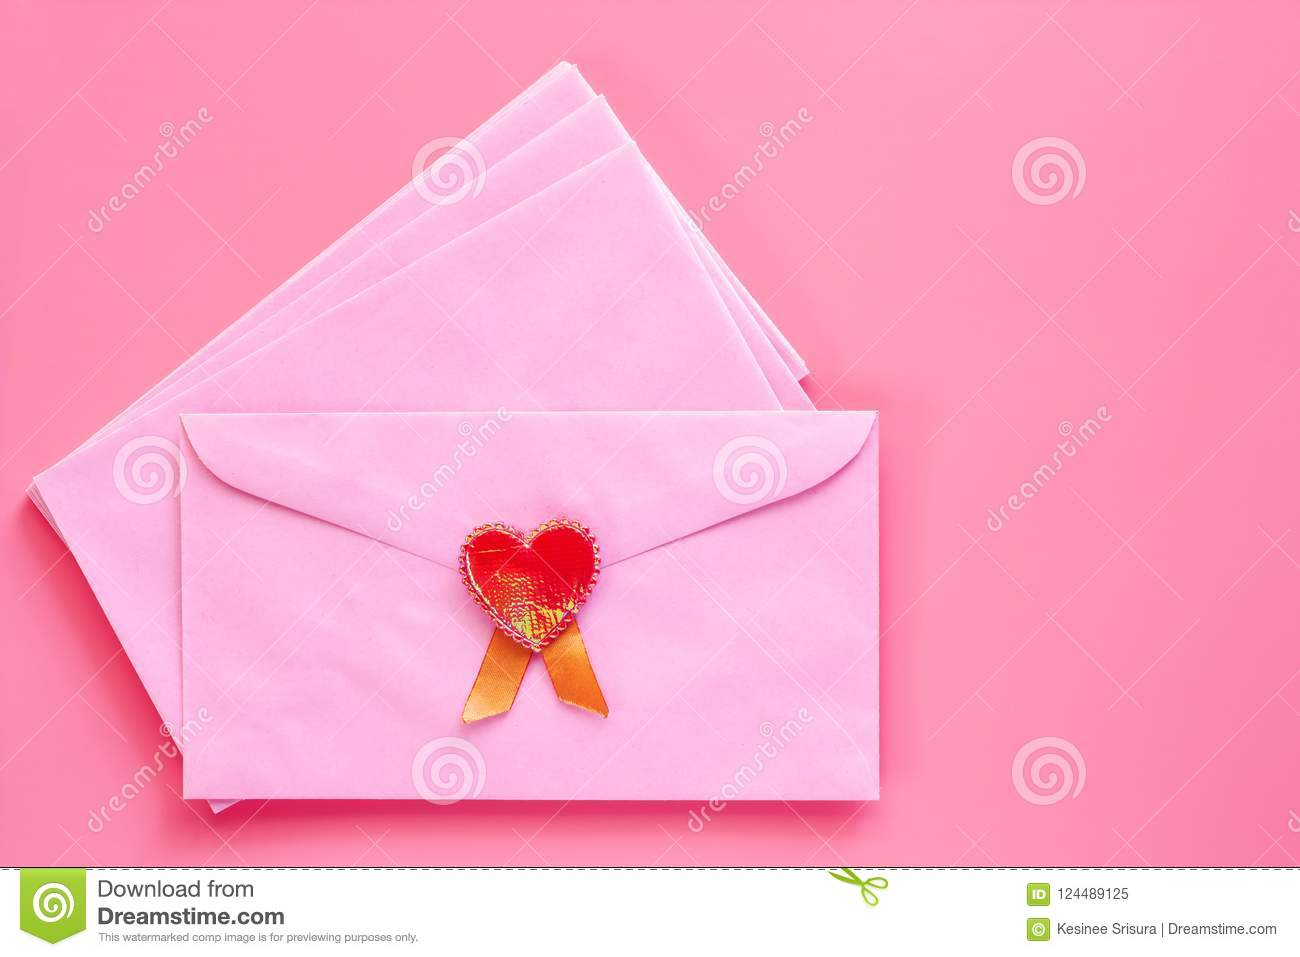 Pink envelope with red heart on pink background